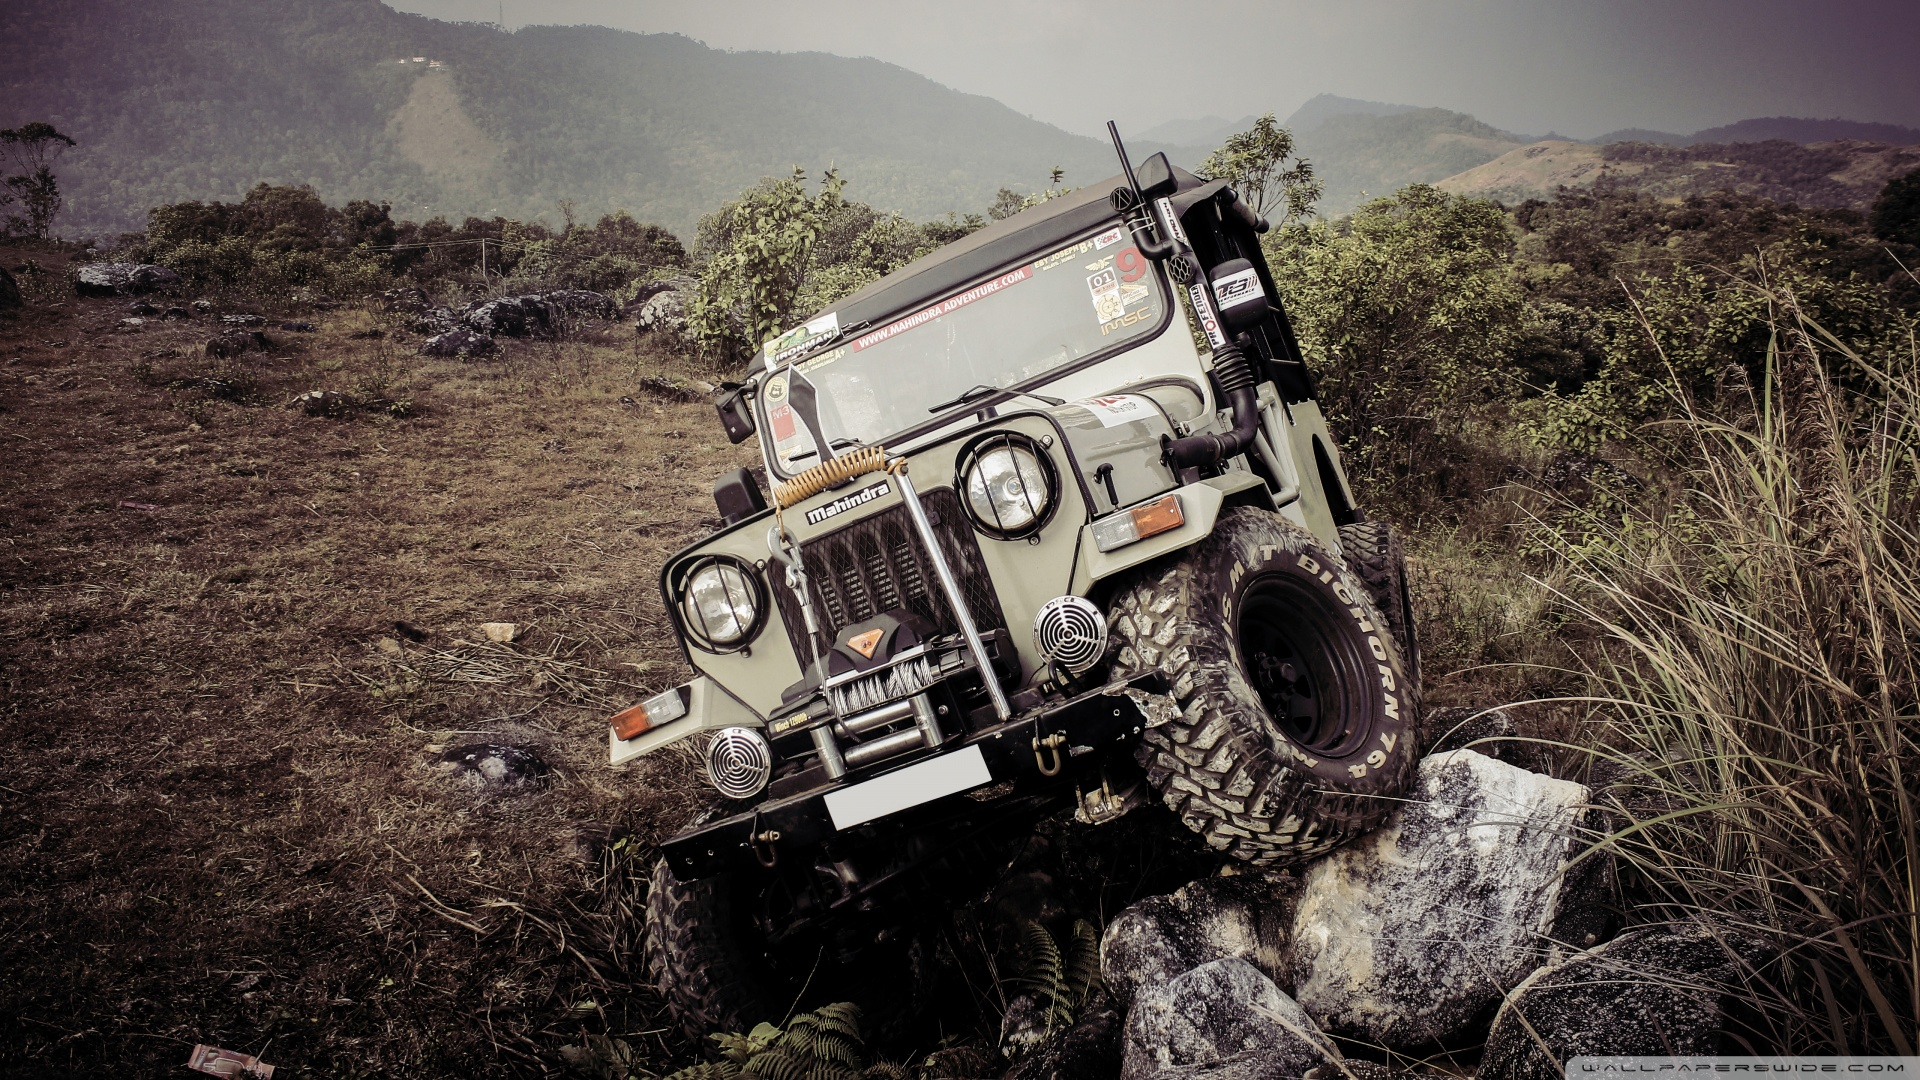 Hd Car Wallpapers For Mobile Download Off Road 4x4 4k Hd Desktop Wallpaper For 4k Ultra Hd Tv